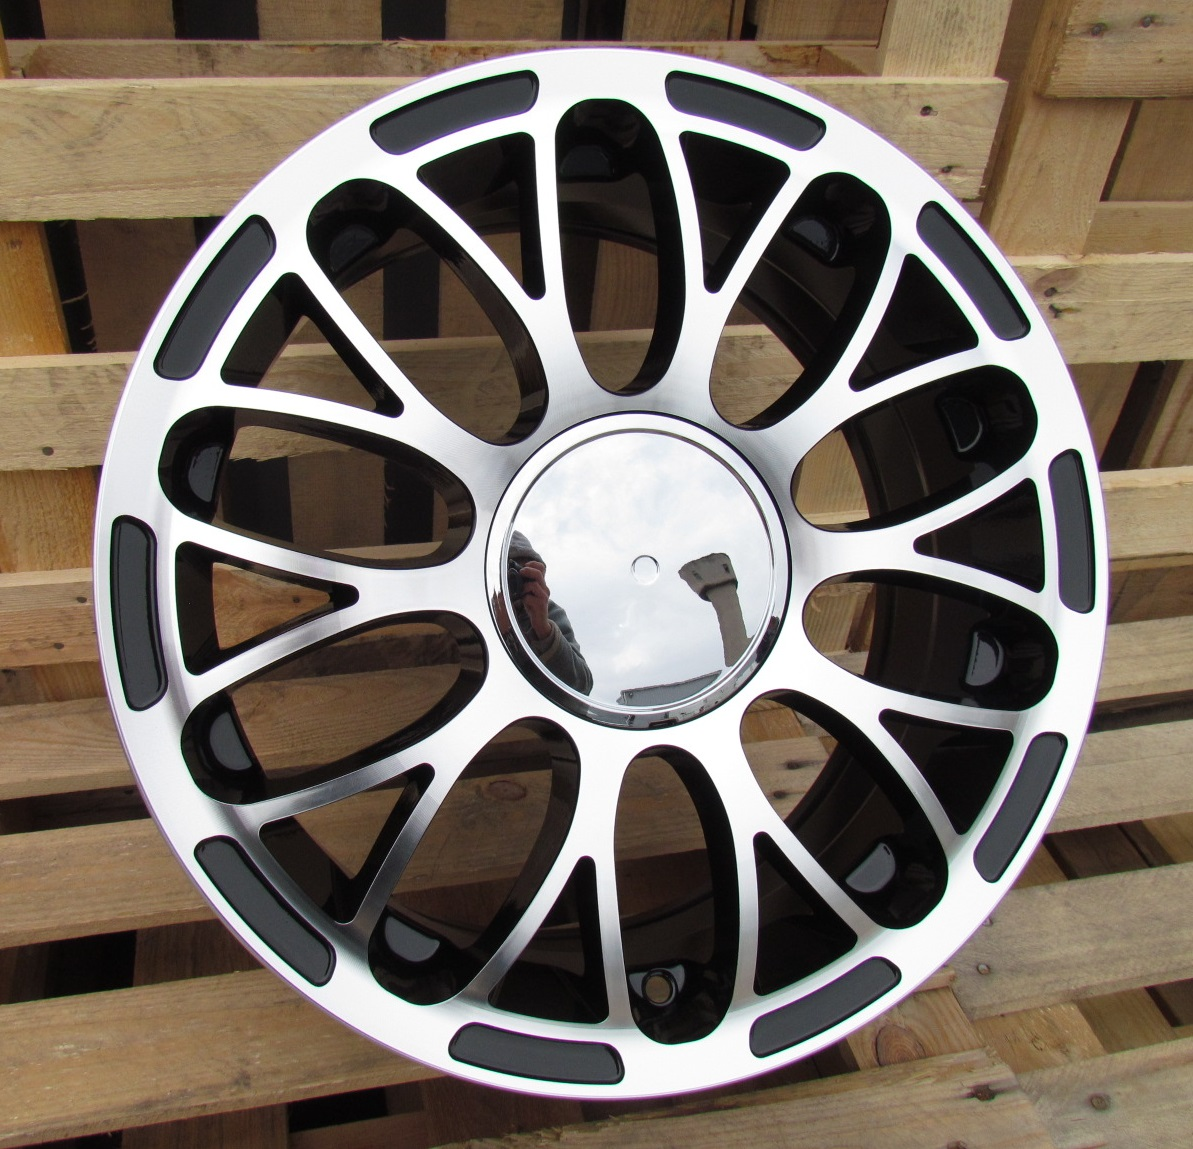 F15X6 4X98 ET35 58.1 LU392 MB+POWDER COATING RWR FIA (+2eur) (R)## 6x15 ET35 4x98